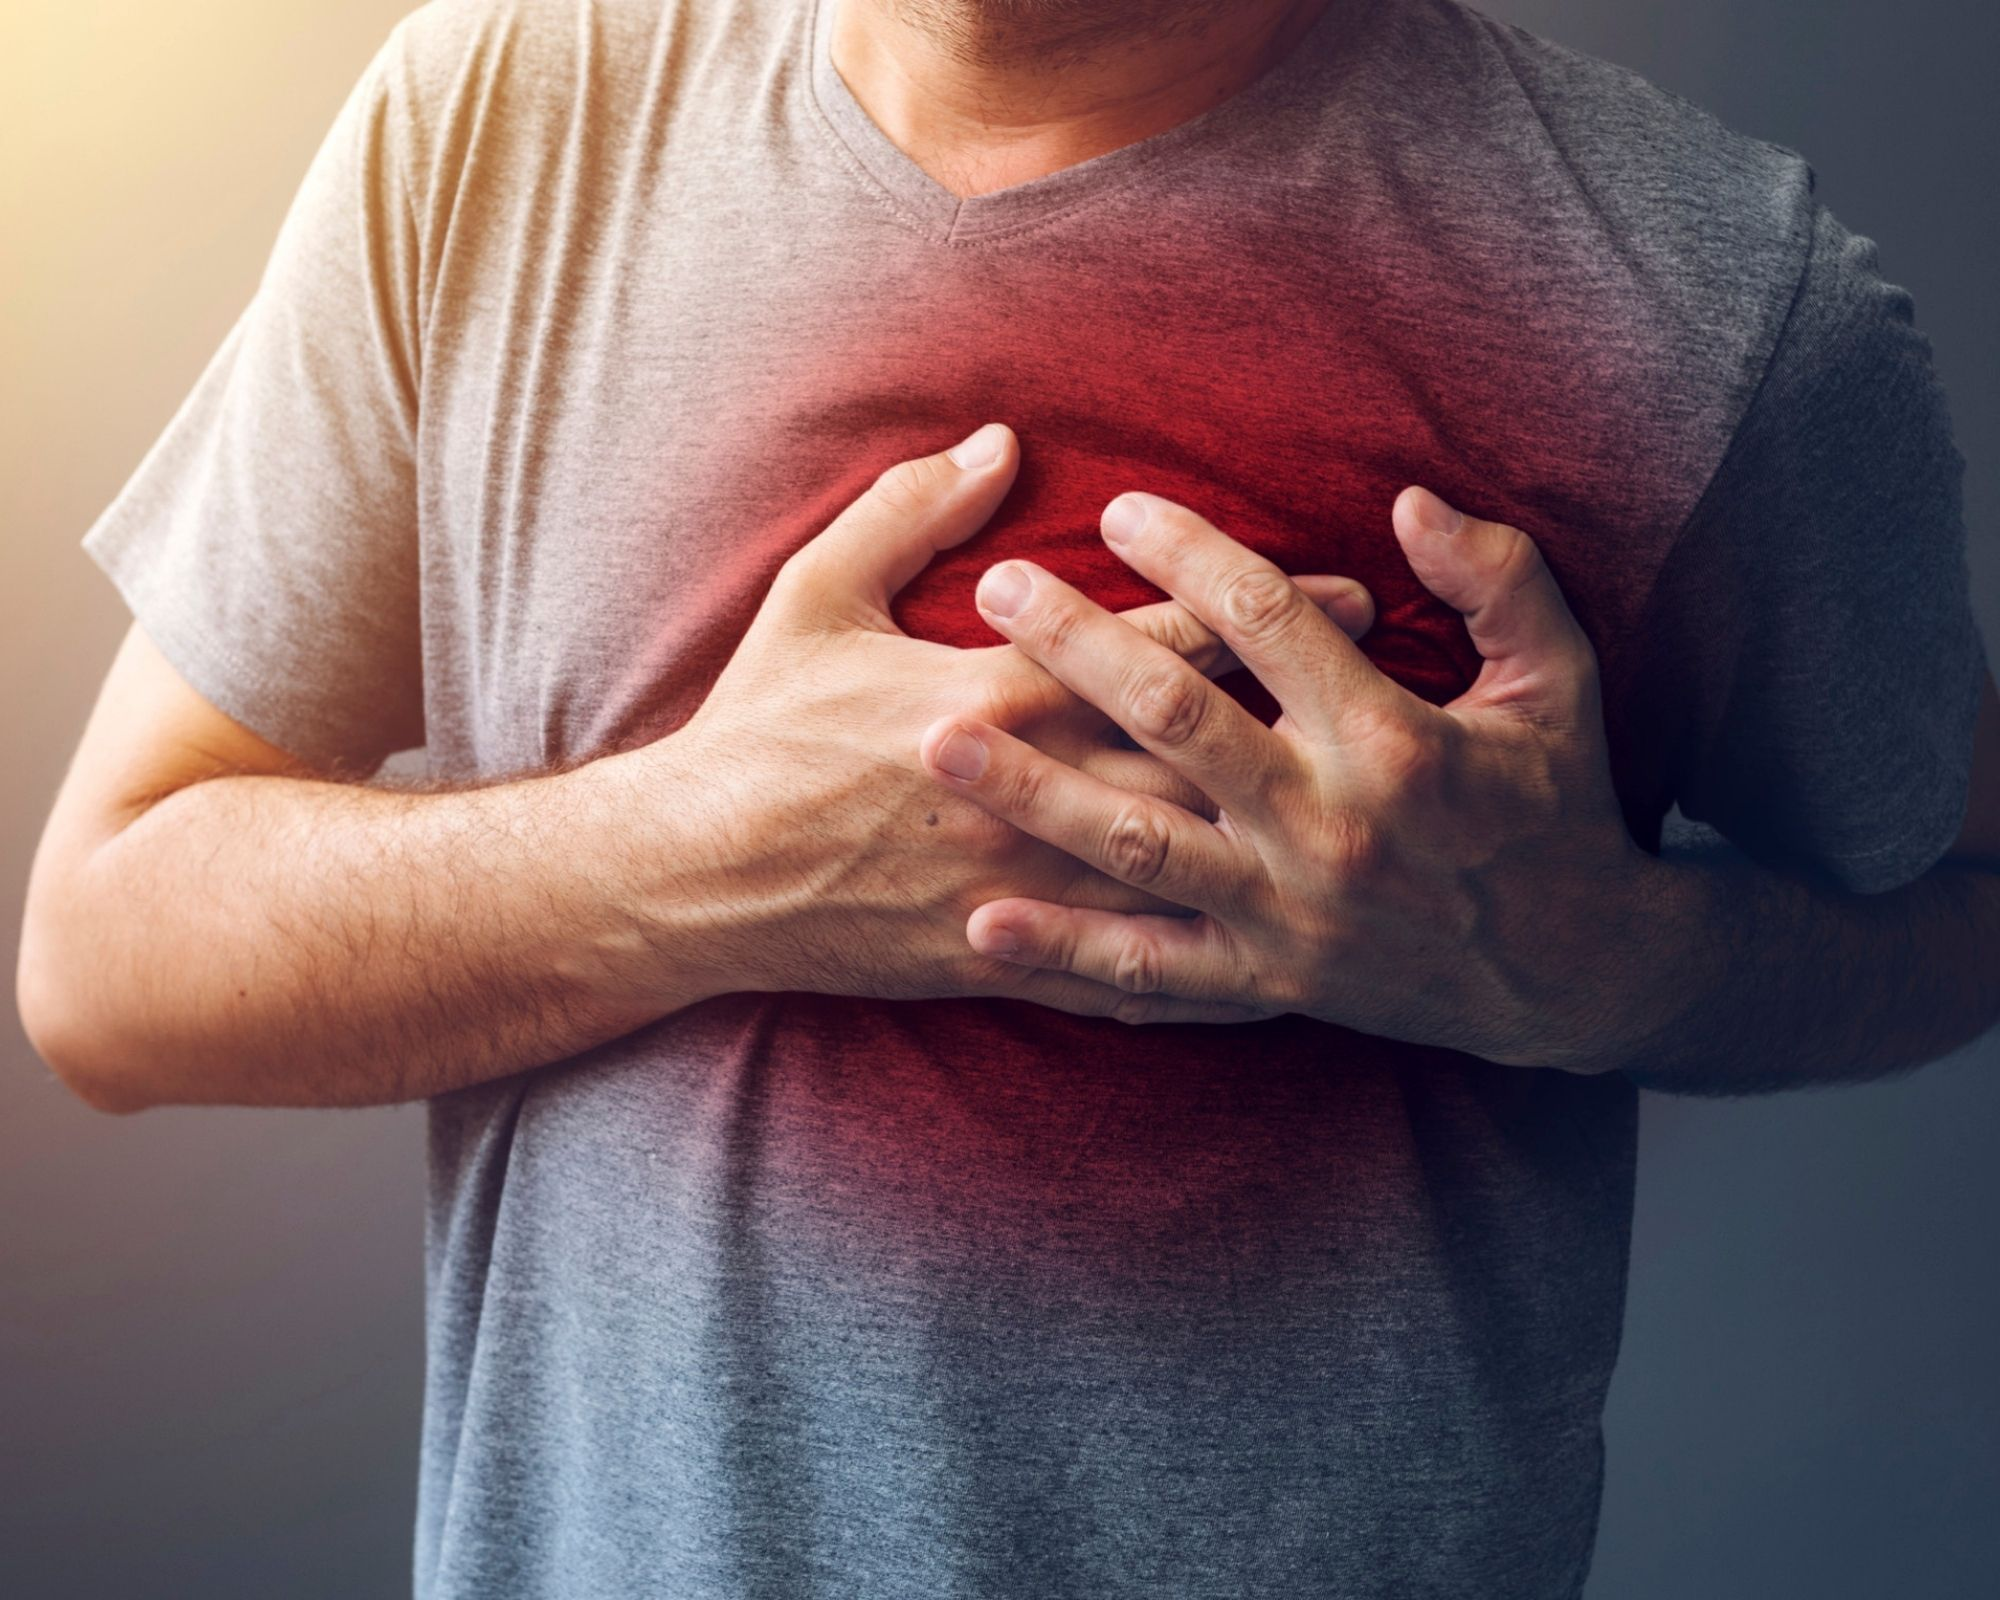 Man holding his chest over his heart with red - indicating a heart attack - could have been prevented with olive leaf extract